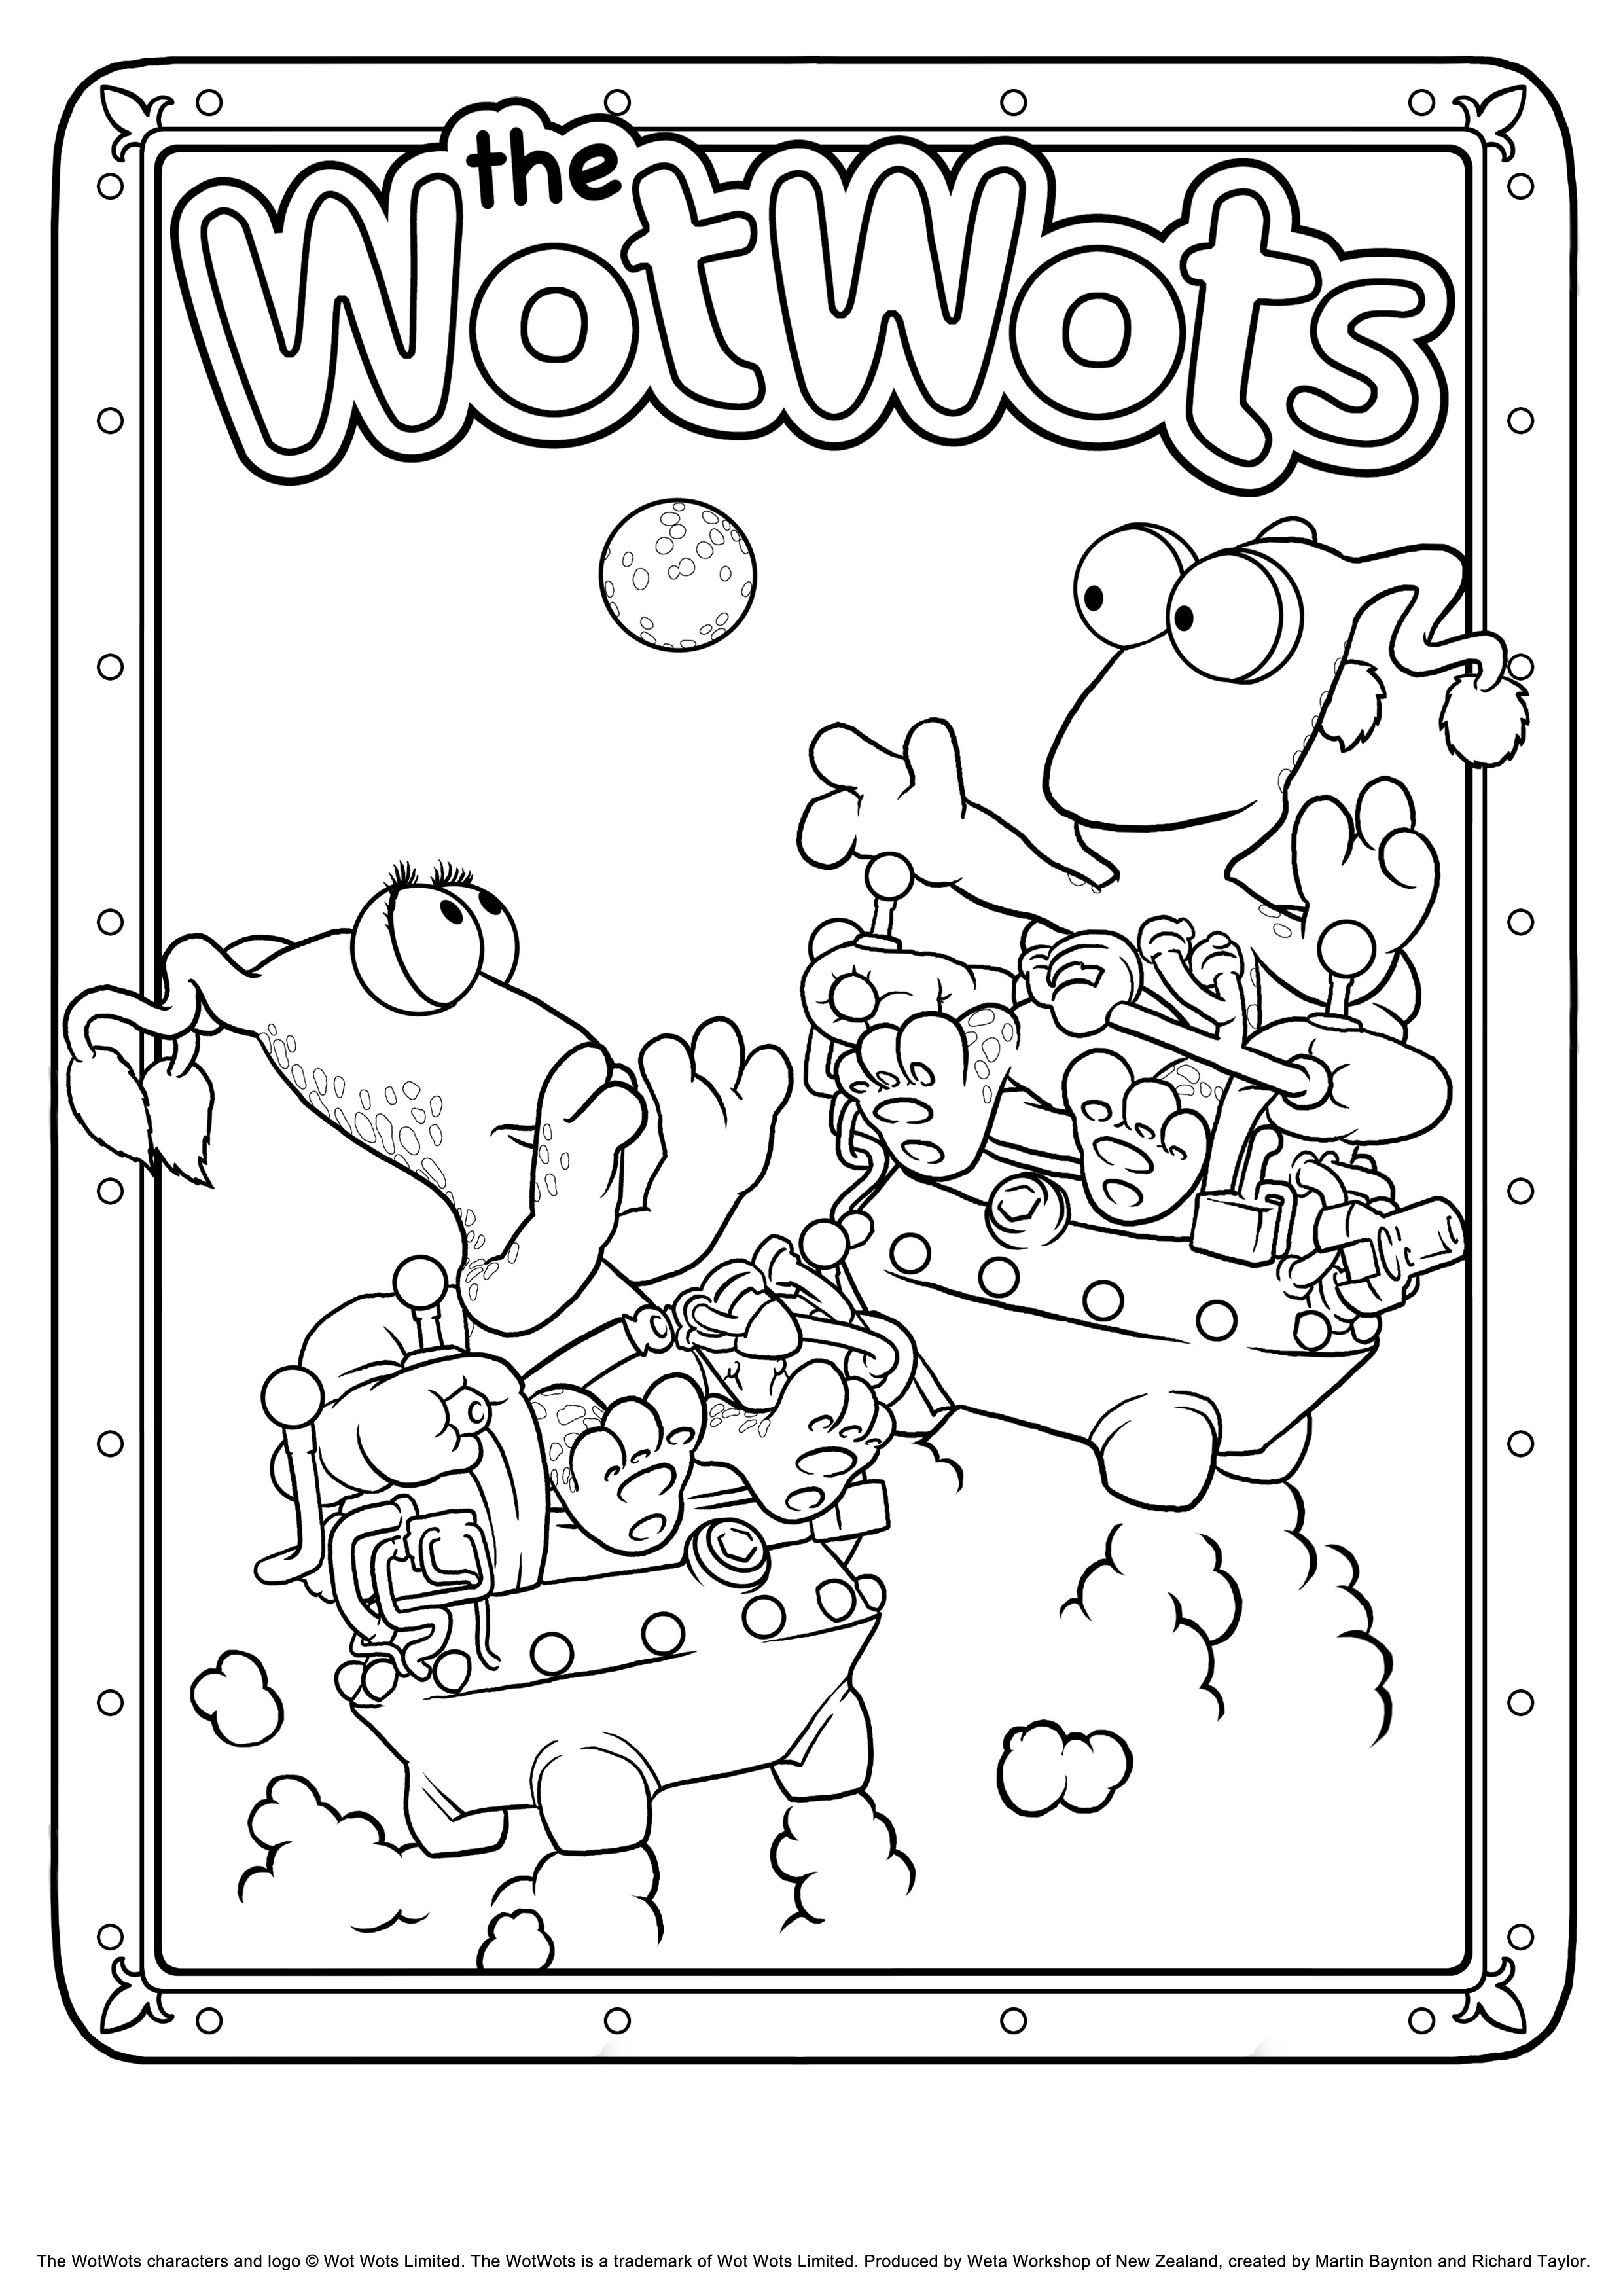 Print & Colour In | The WotWots